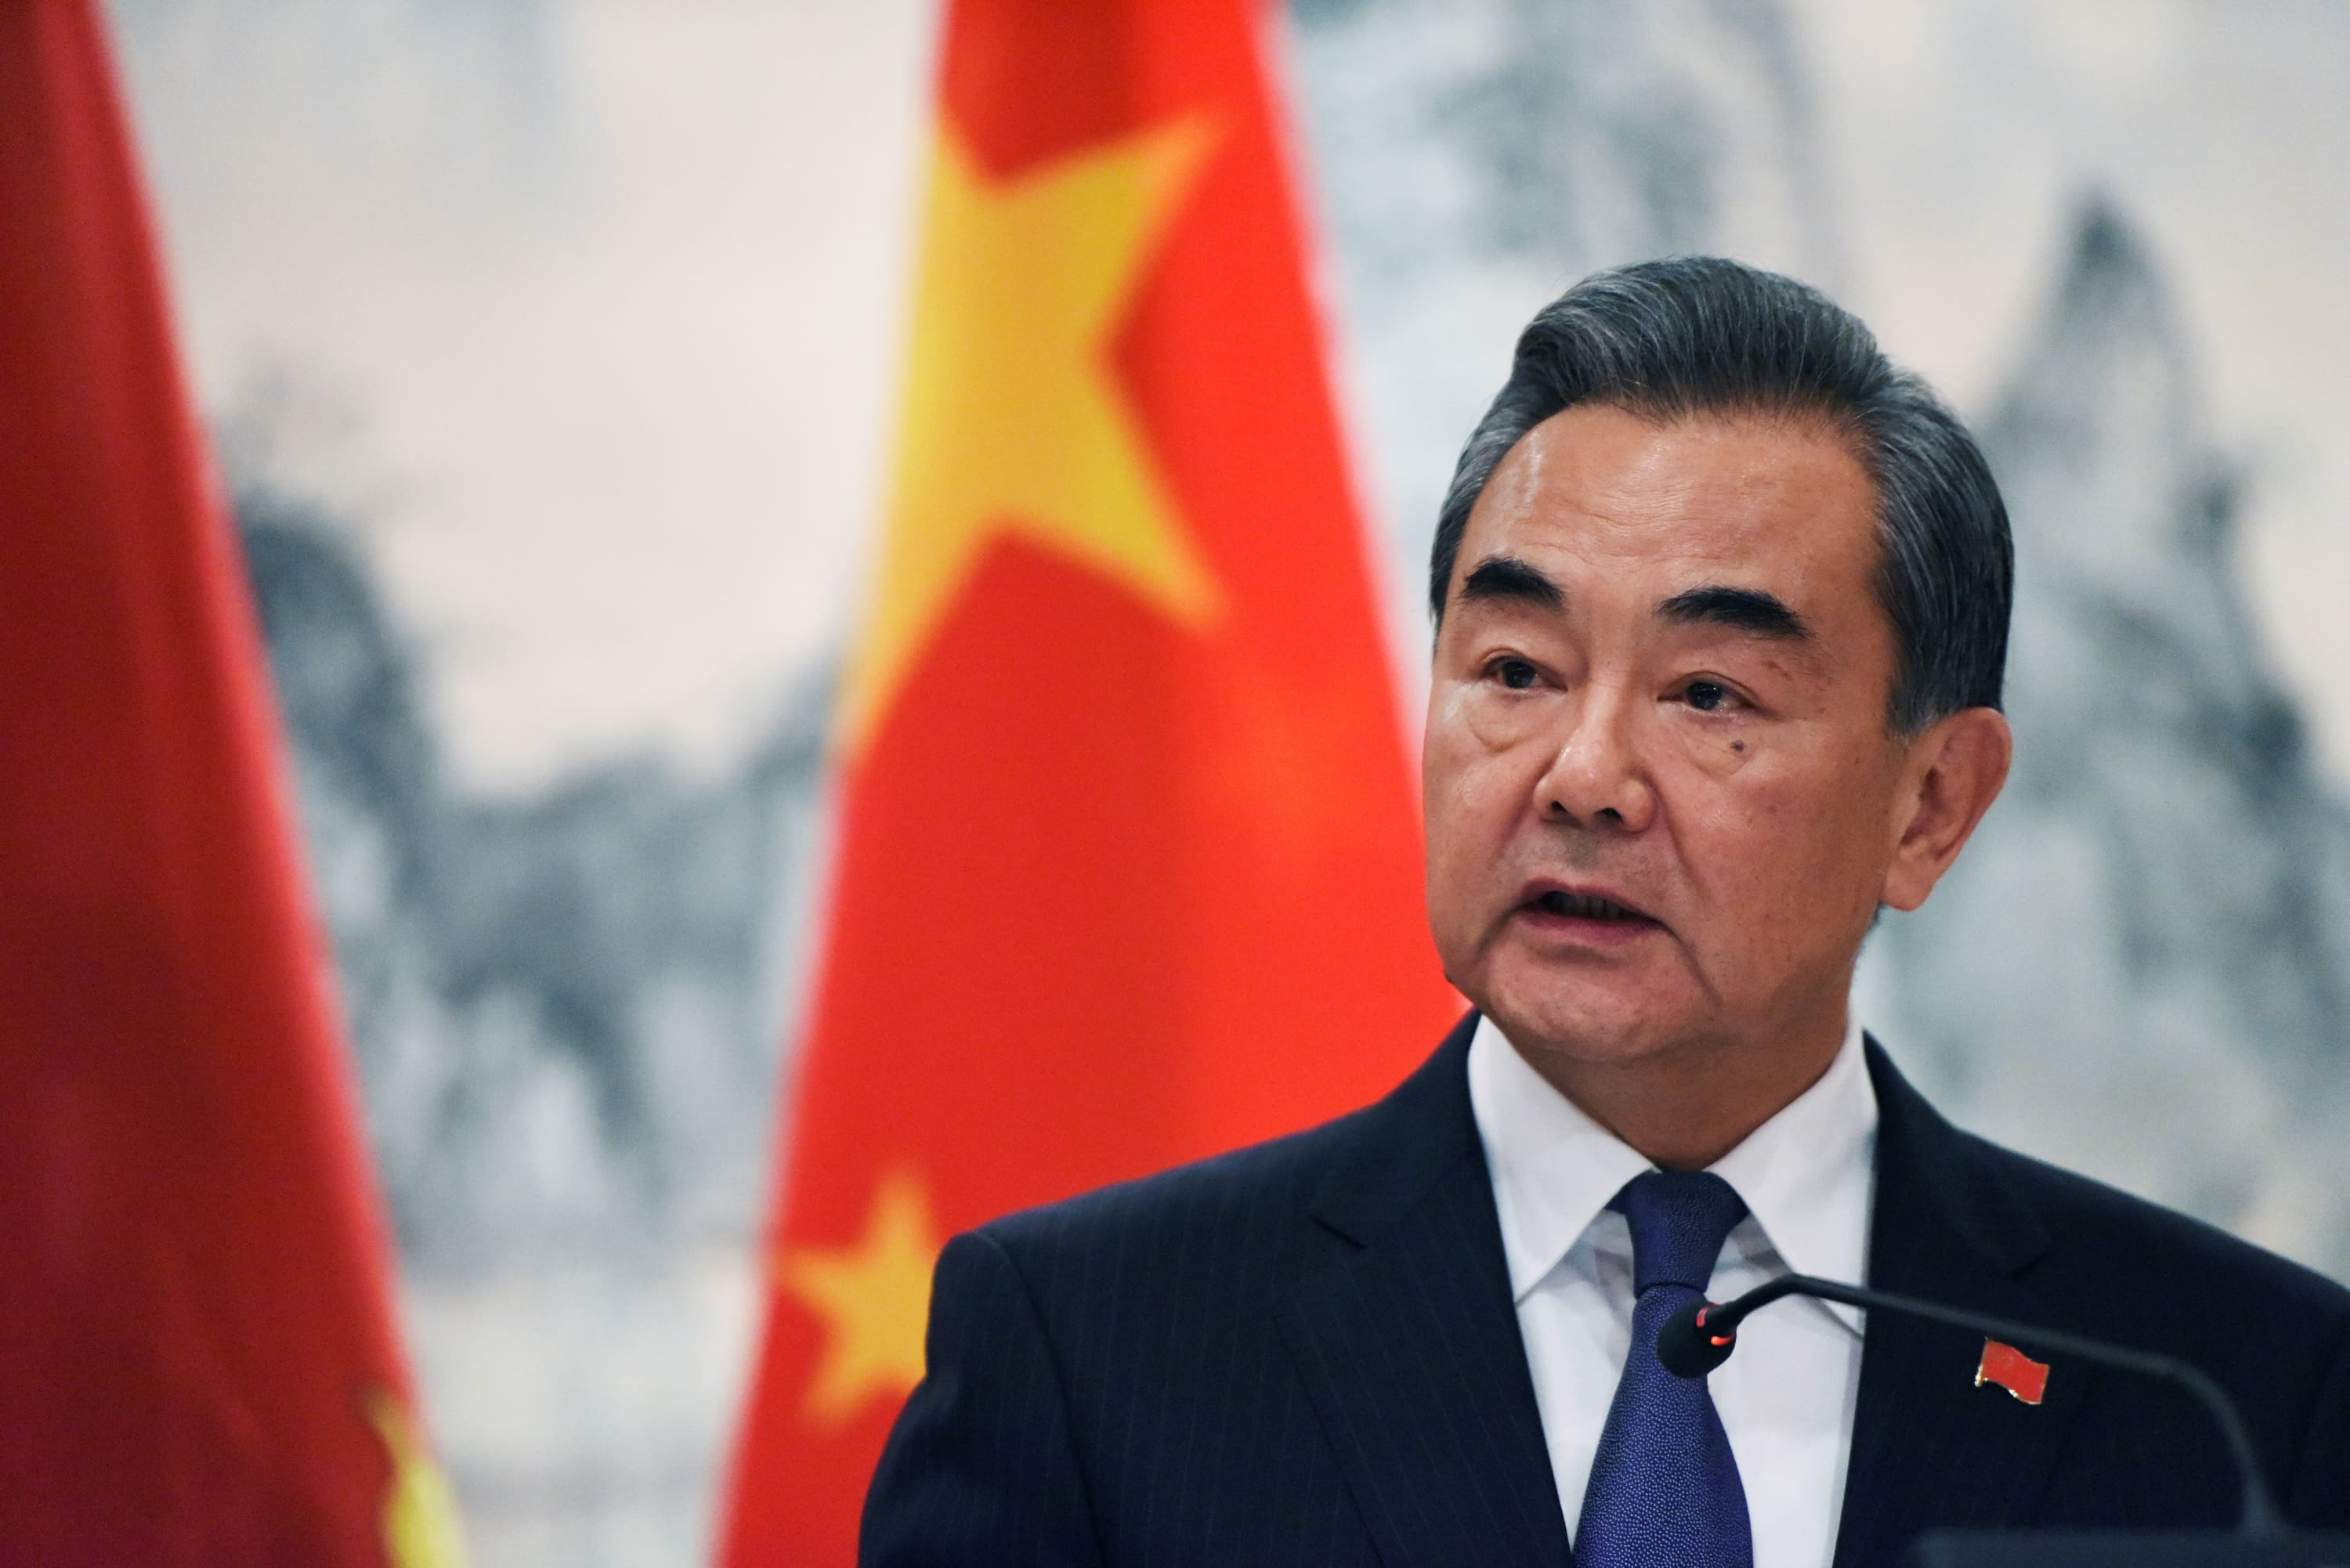 Chinese foreign minister attends Munich Security Conference amid coronavirus outbreak